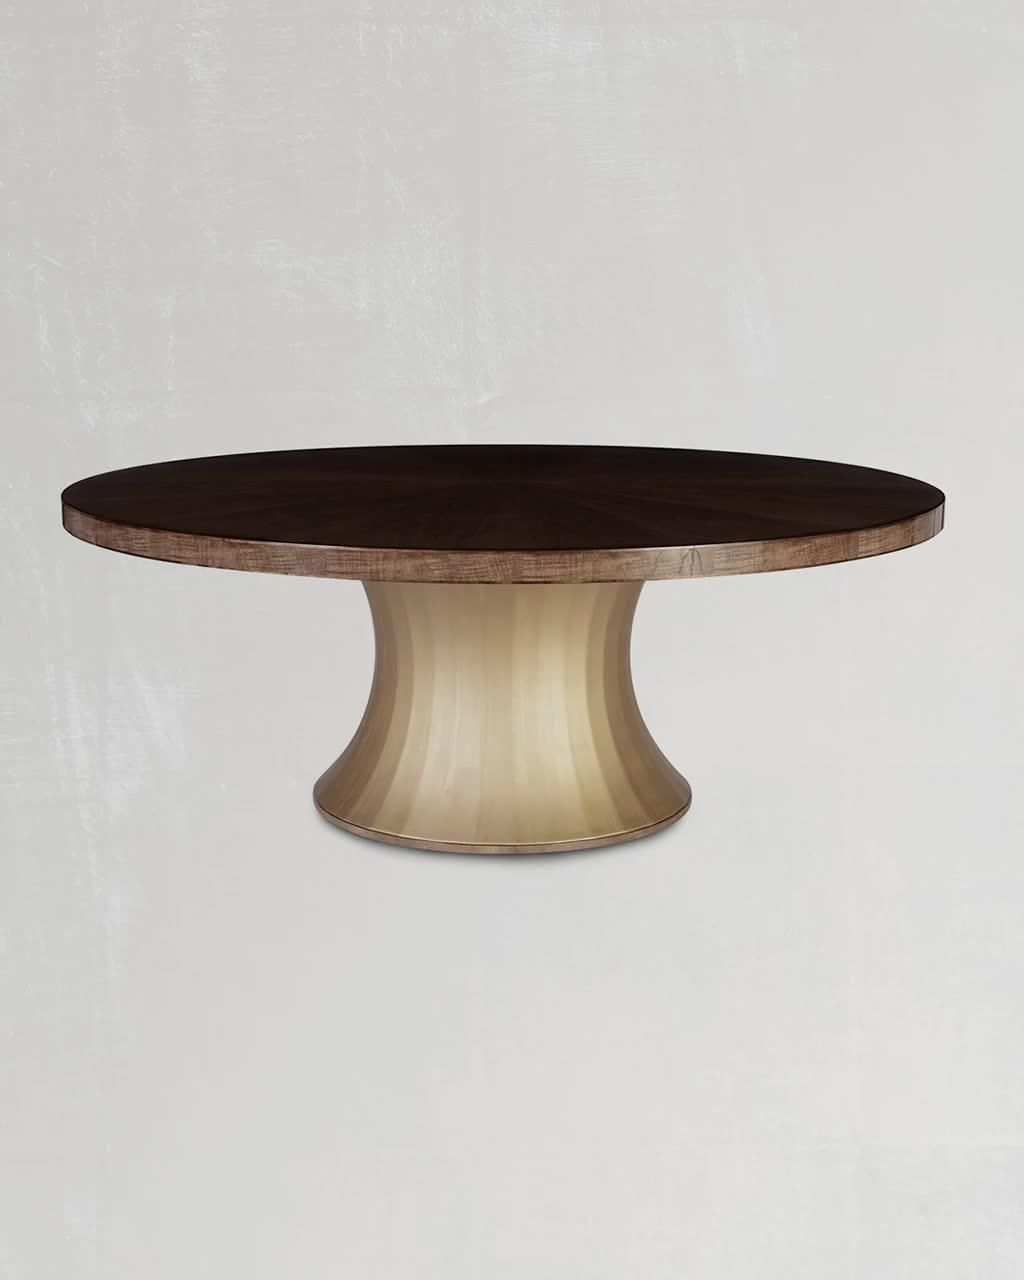 The Rosebery Dining Table